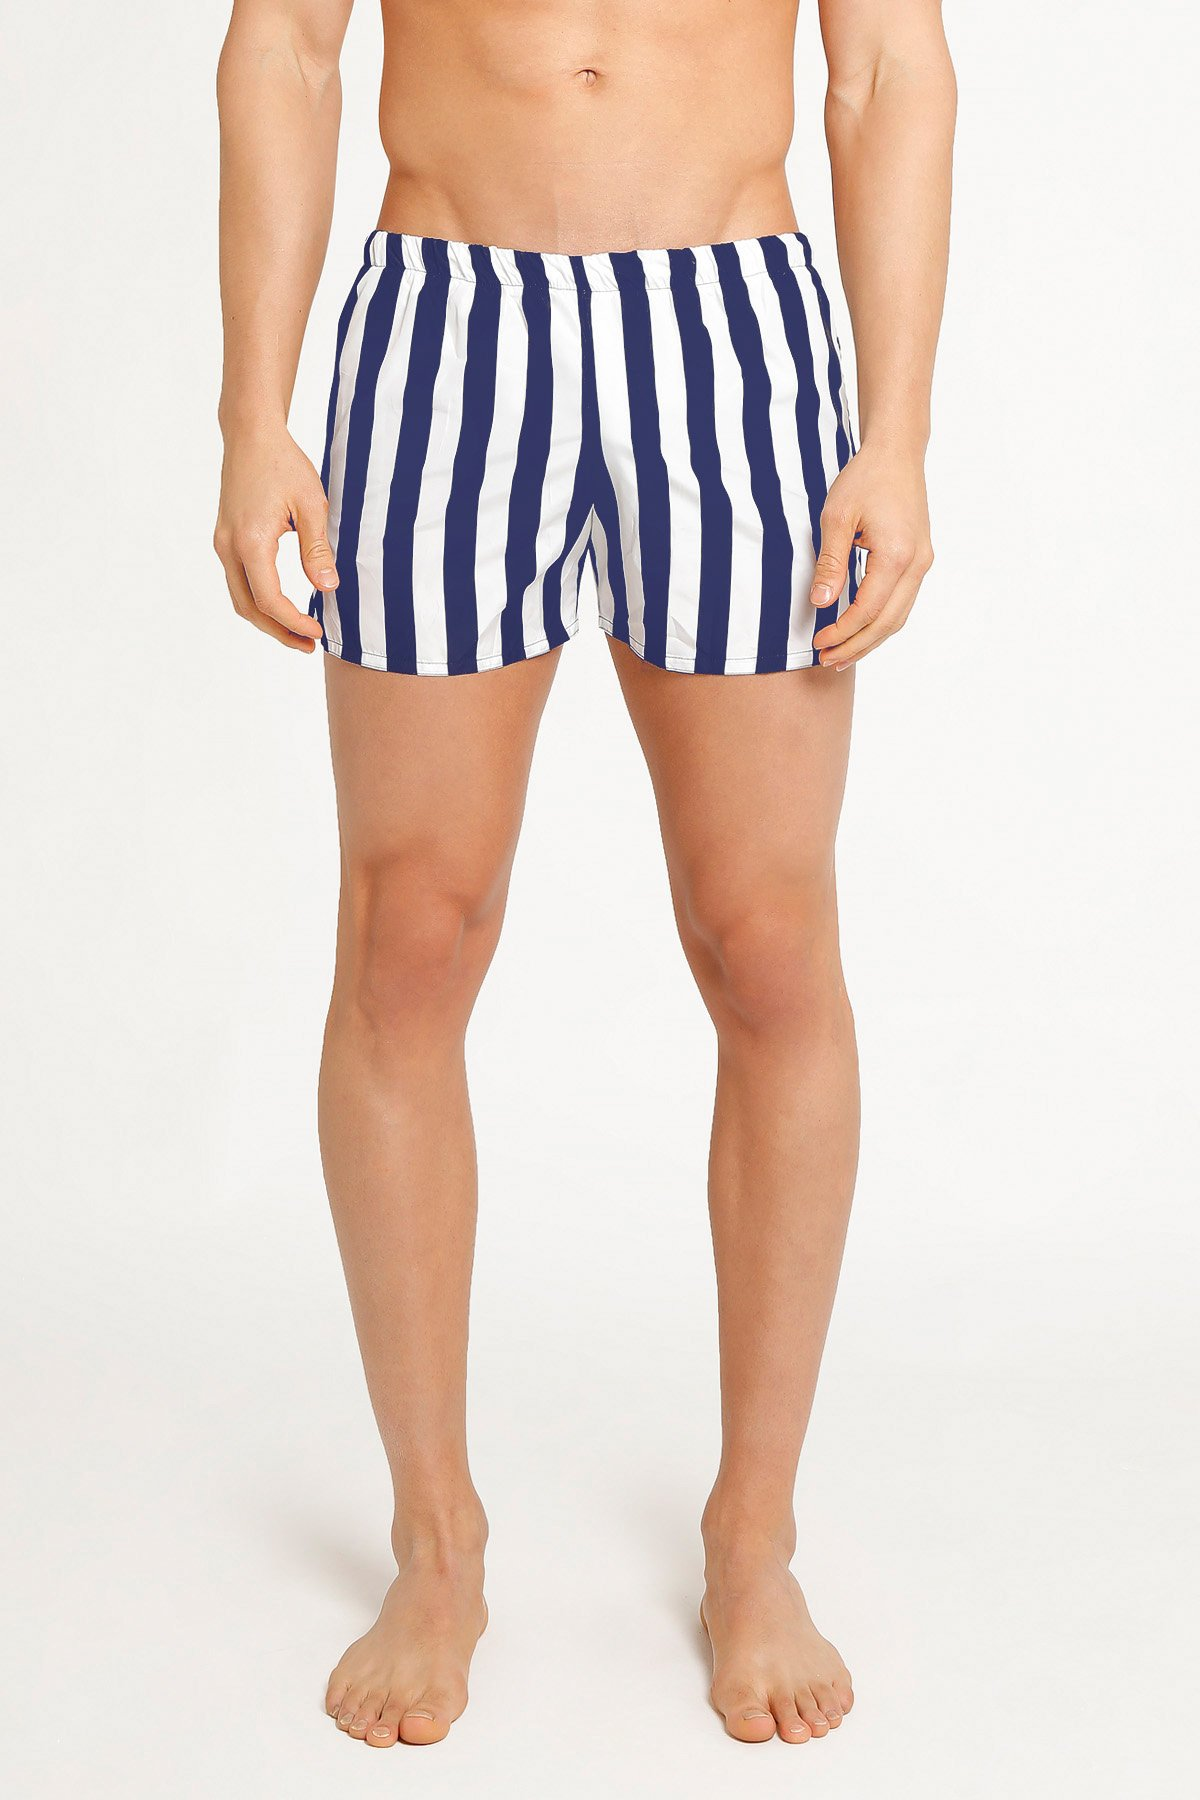 Picture of Yesiam | Shorts Stripes